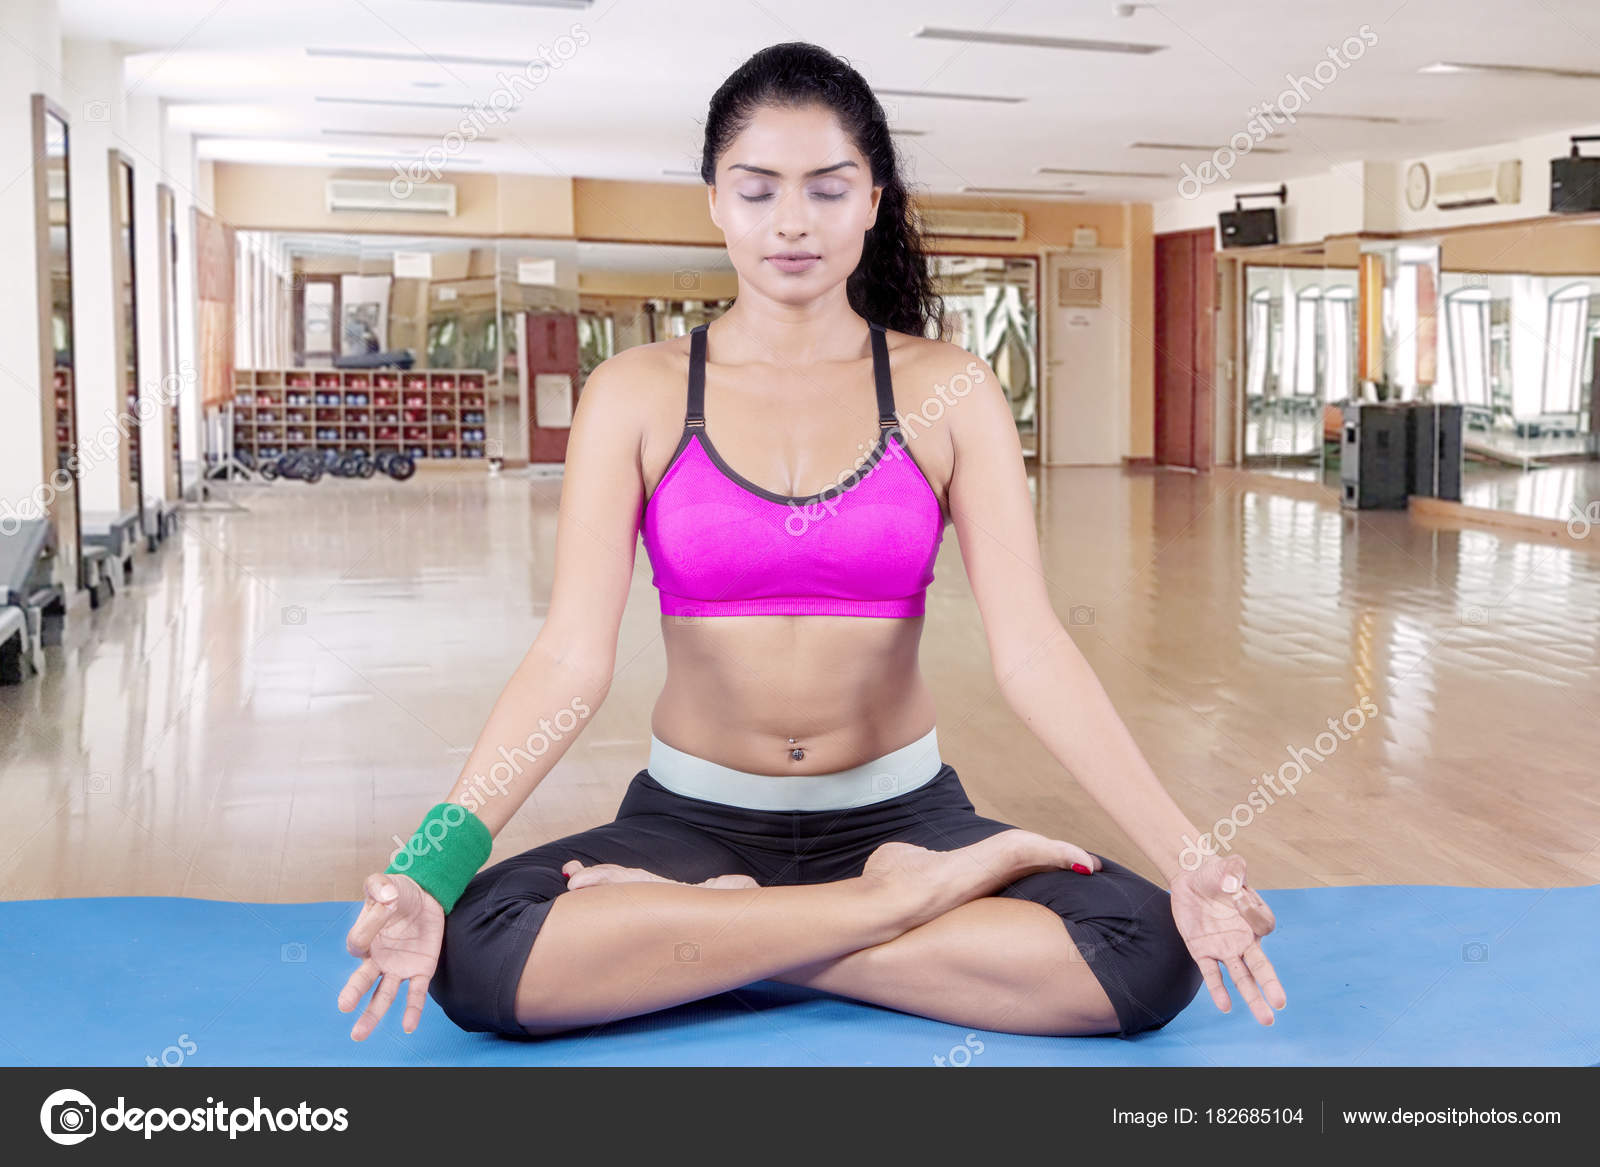 Indian Woman Meditating In The Fitness Center Stock Photo C Realinemedia 182685104